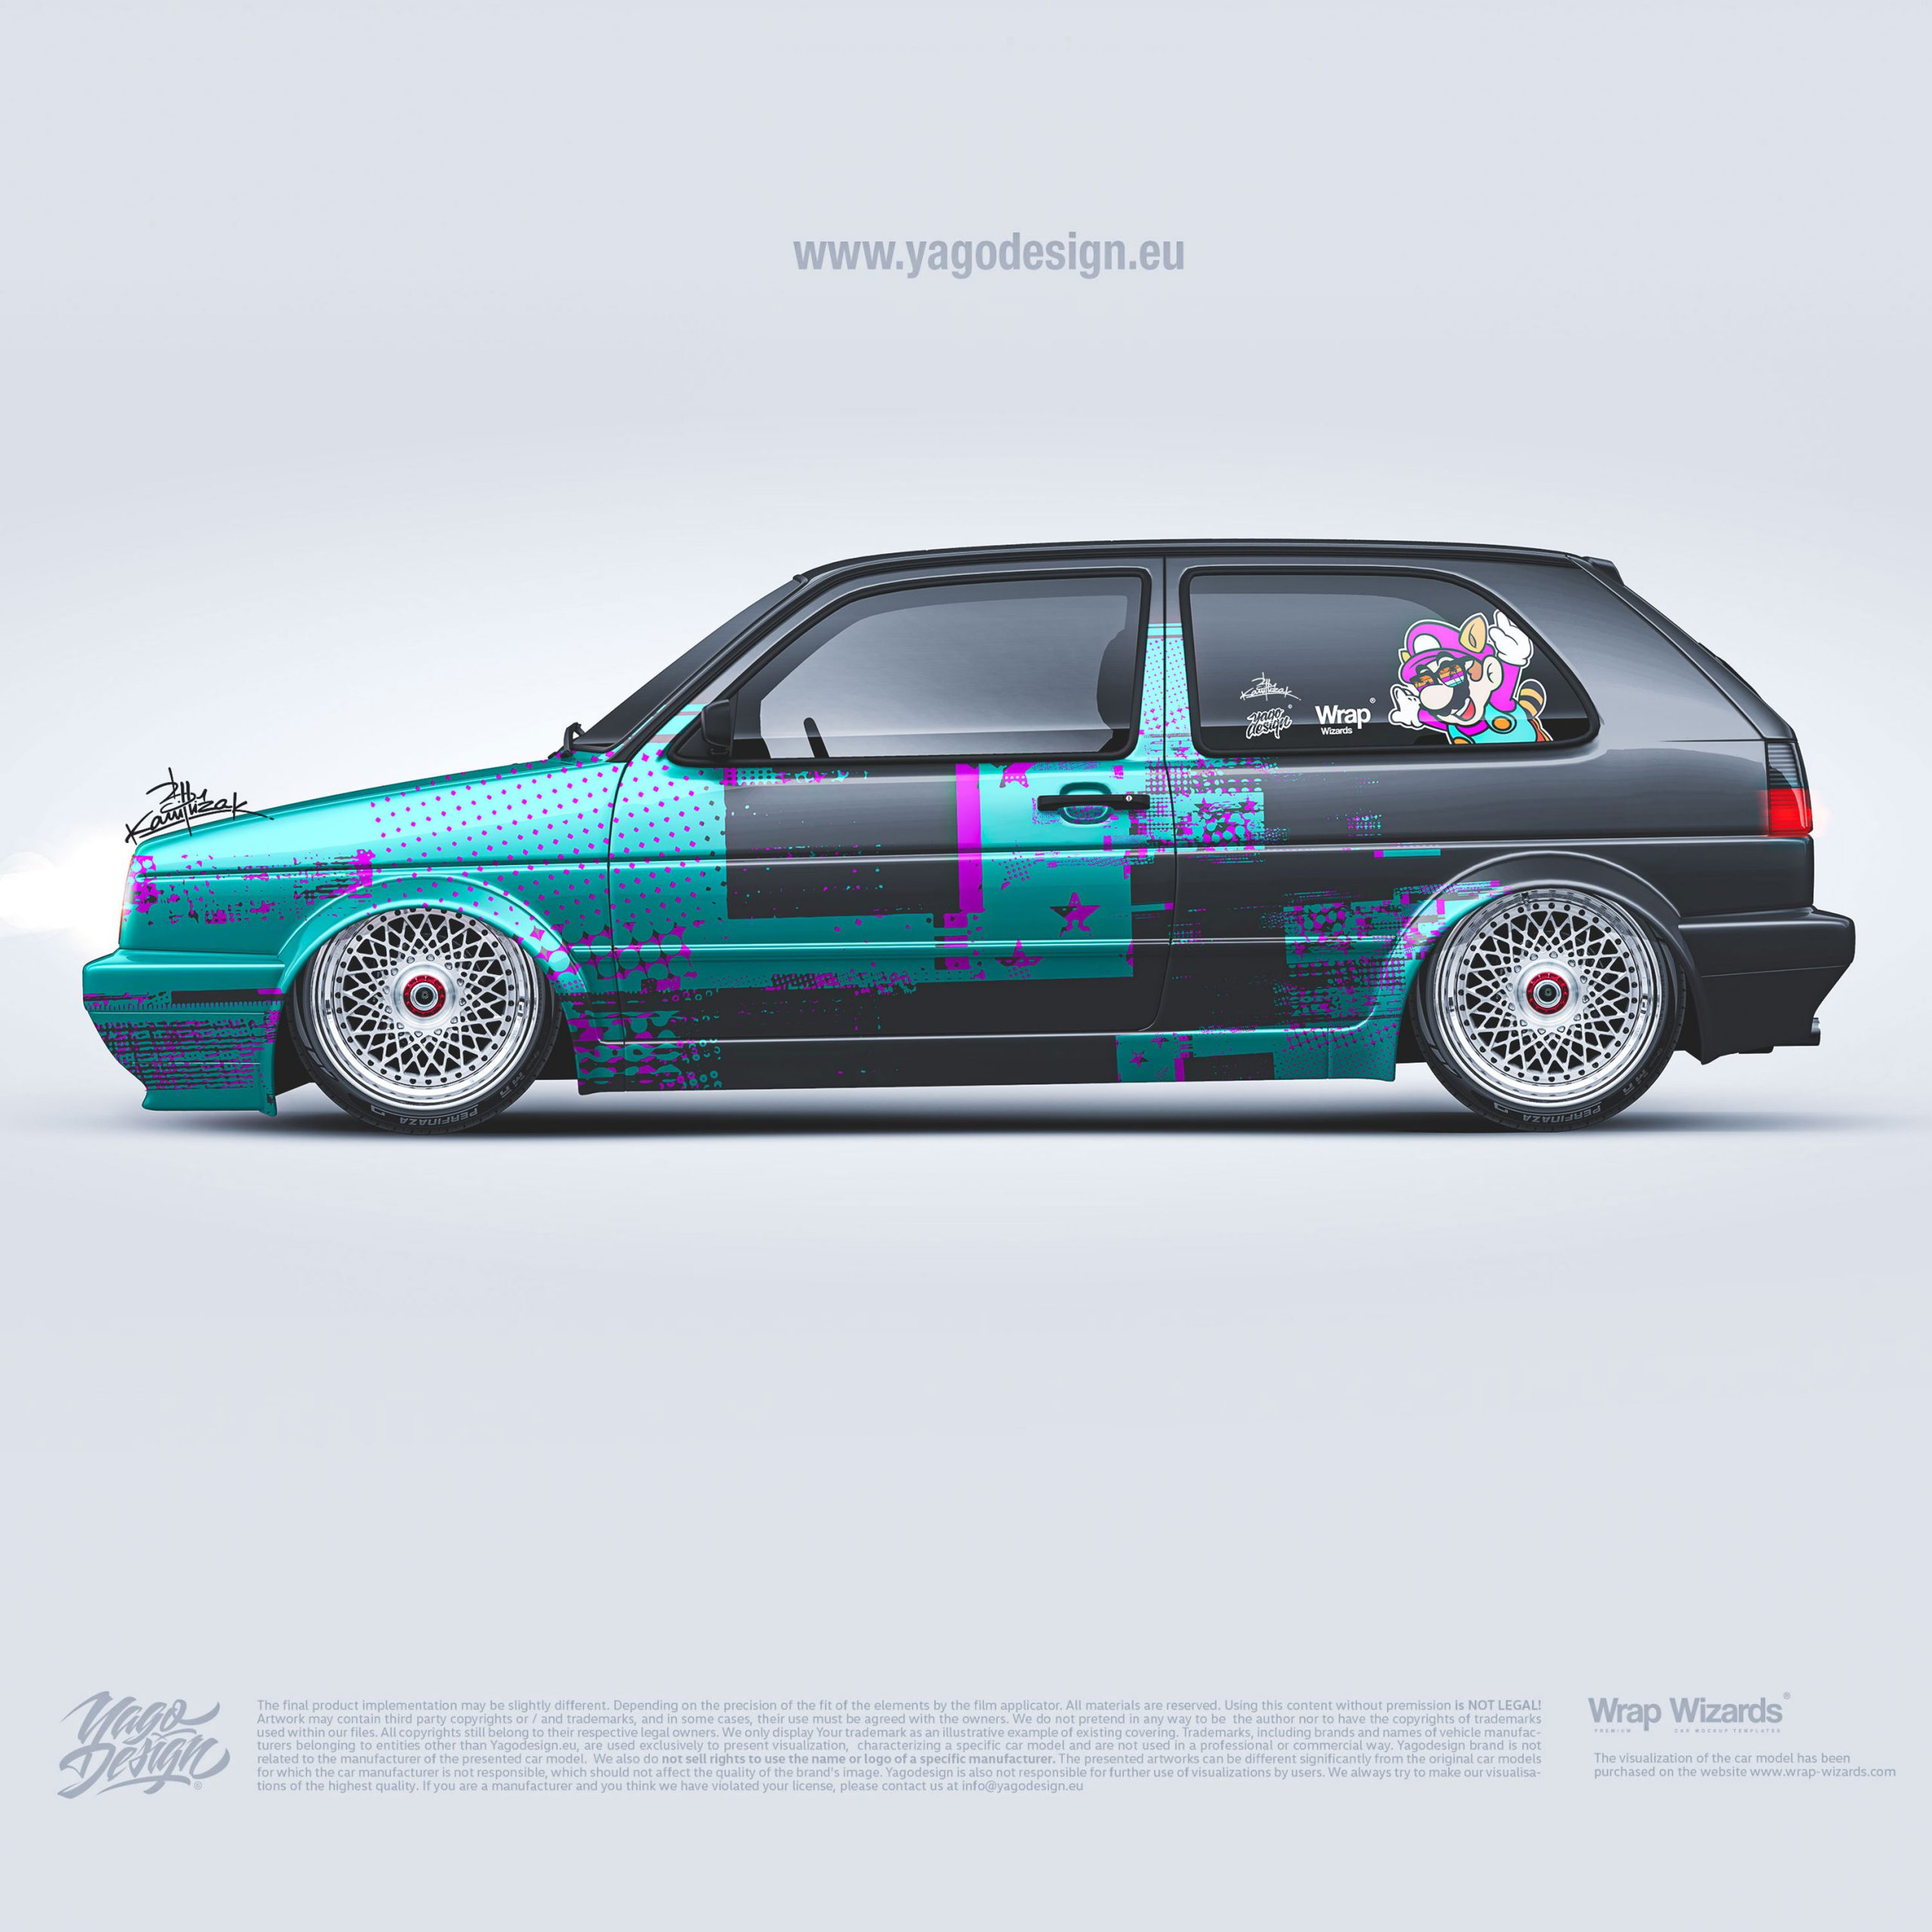 Volkswagen-Golf-MK2-GTI–by-Yagodesign-Livery-Design-Car-wrapping-studio